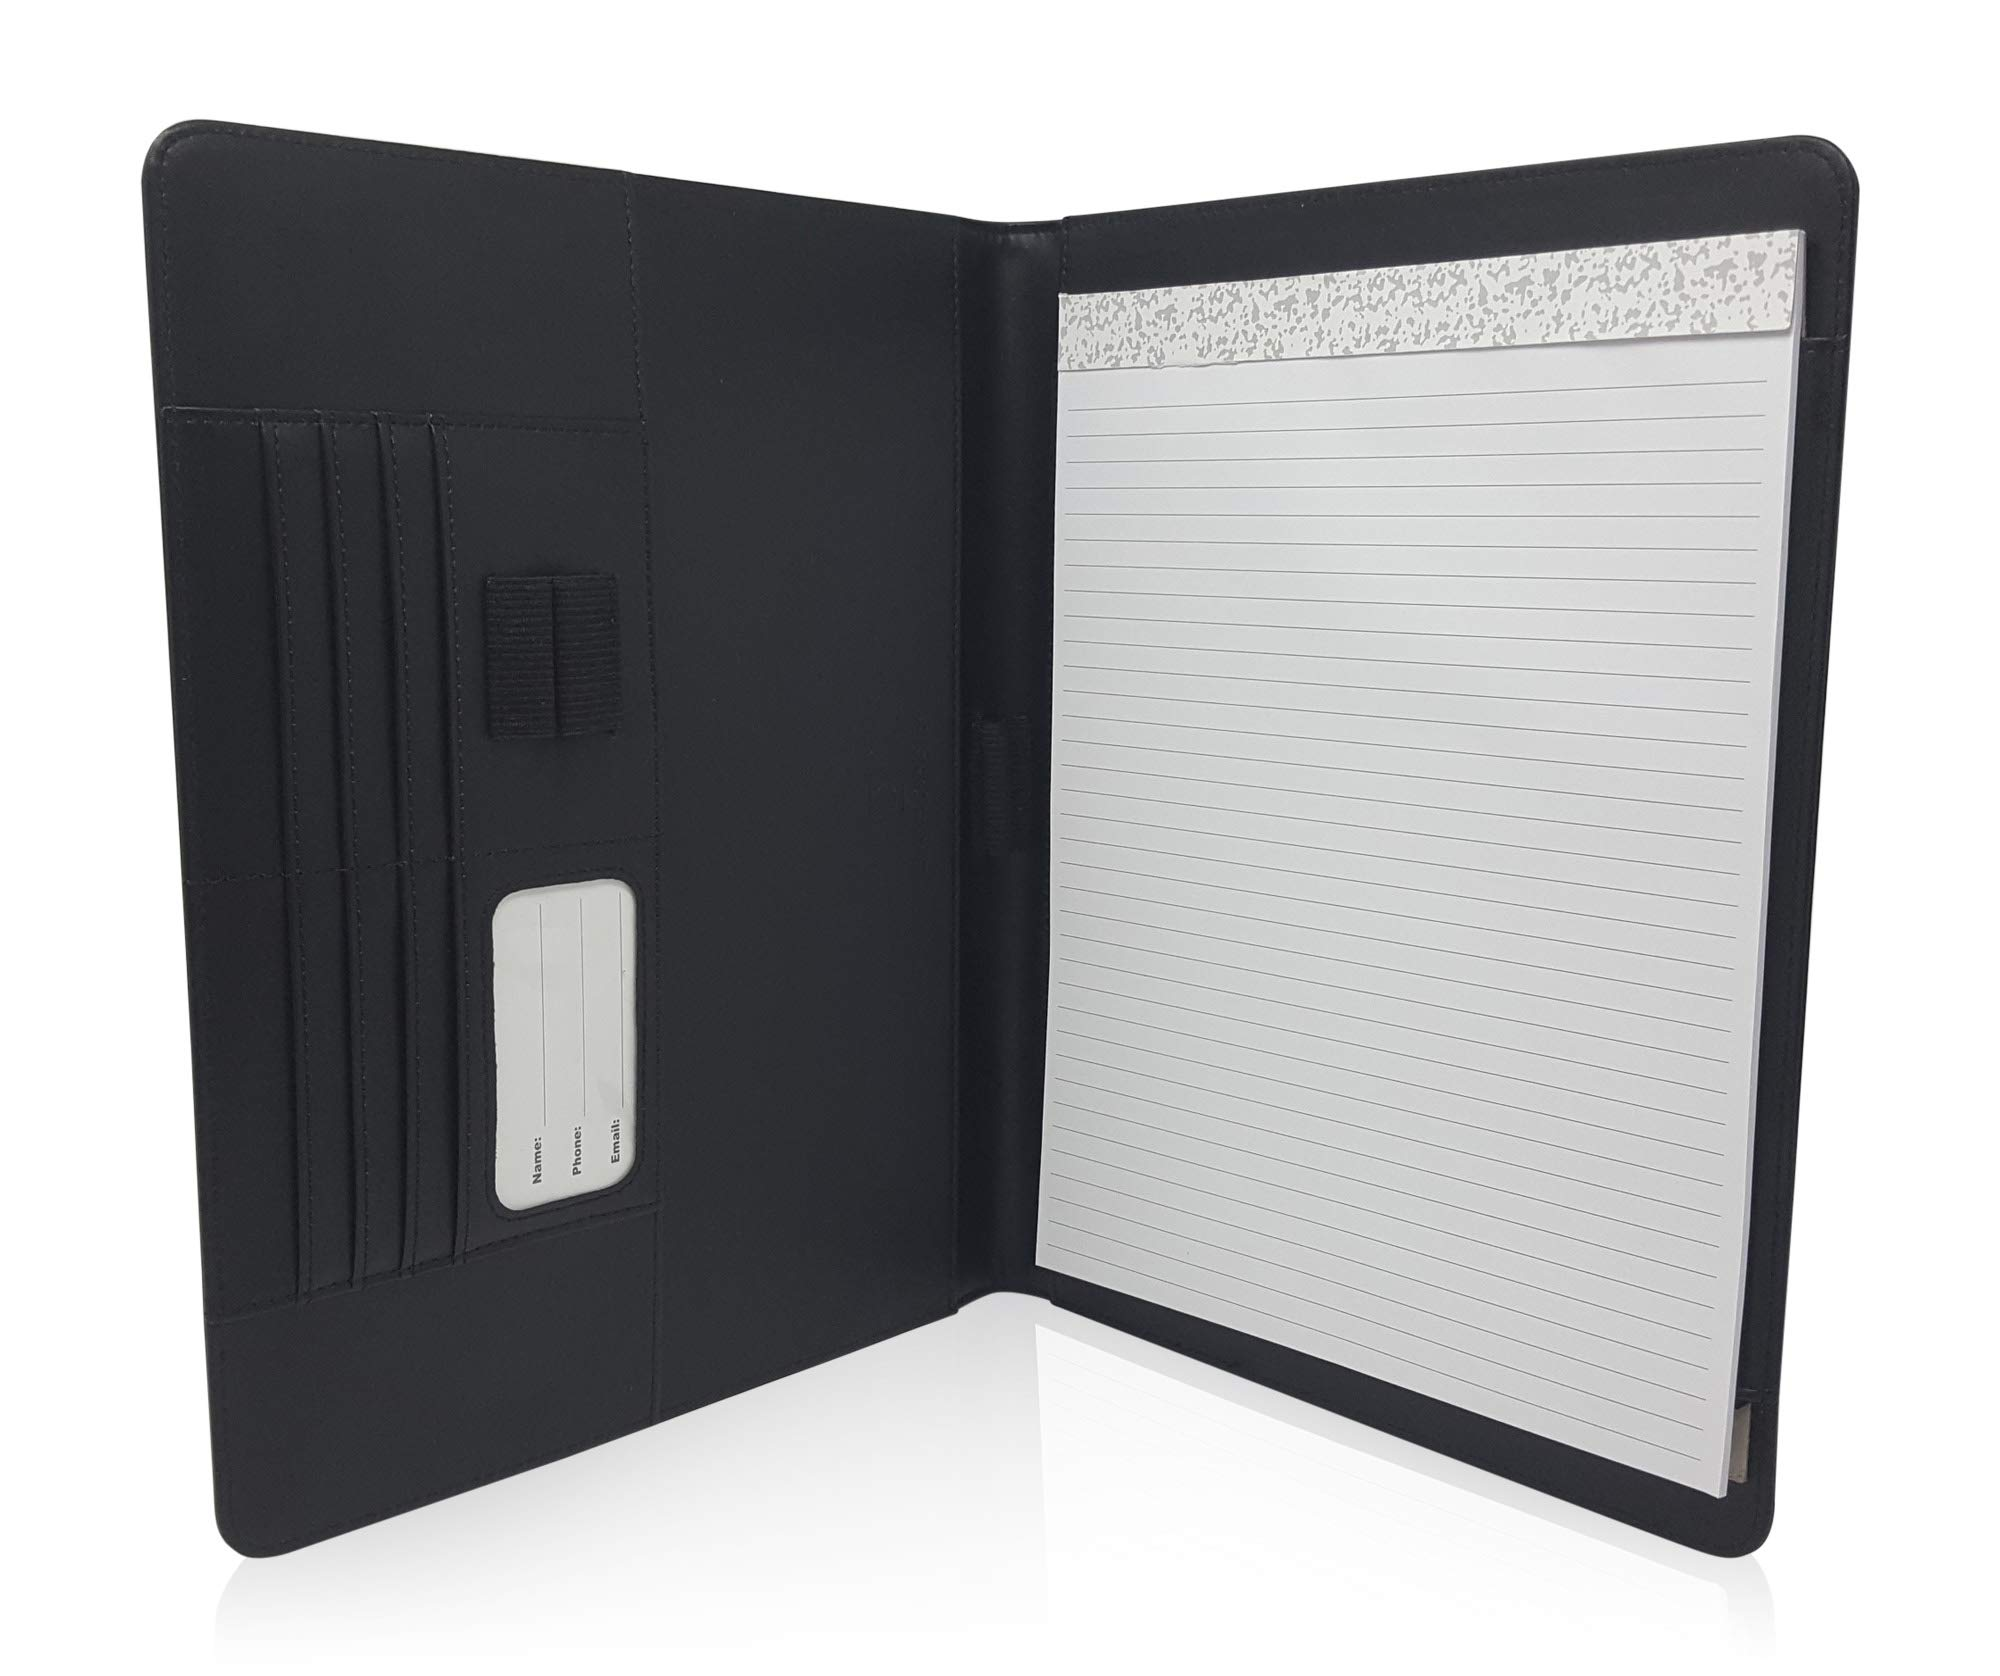 Thin Resume Portfolio Folder Organizer - Matt Black PU Leather Notepad Holder for Right or Left Handed Business Men/Women with 8.5 x 11'' Notepad by Lautus Designs